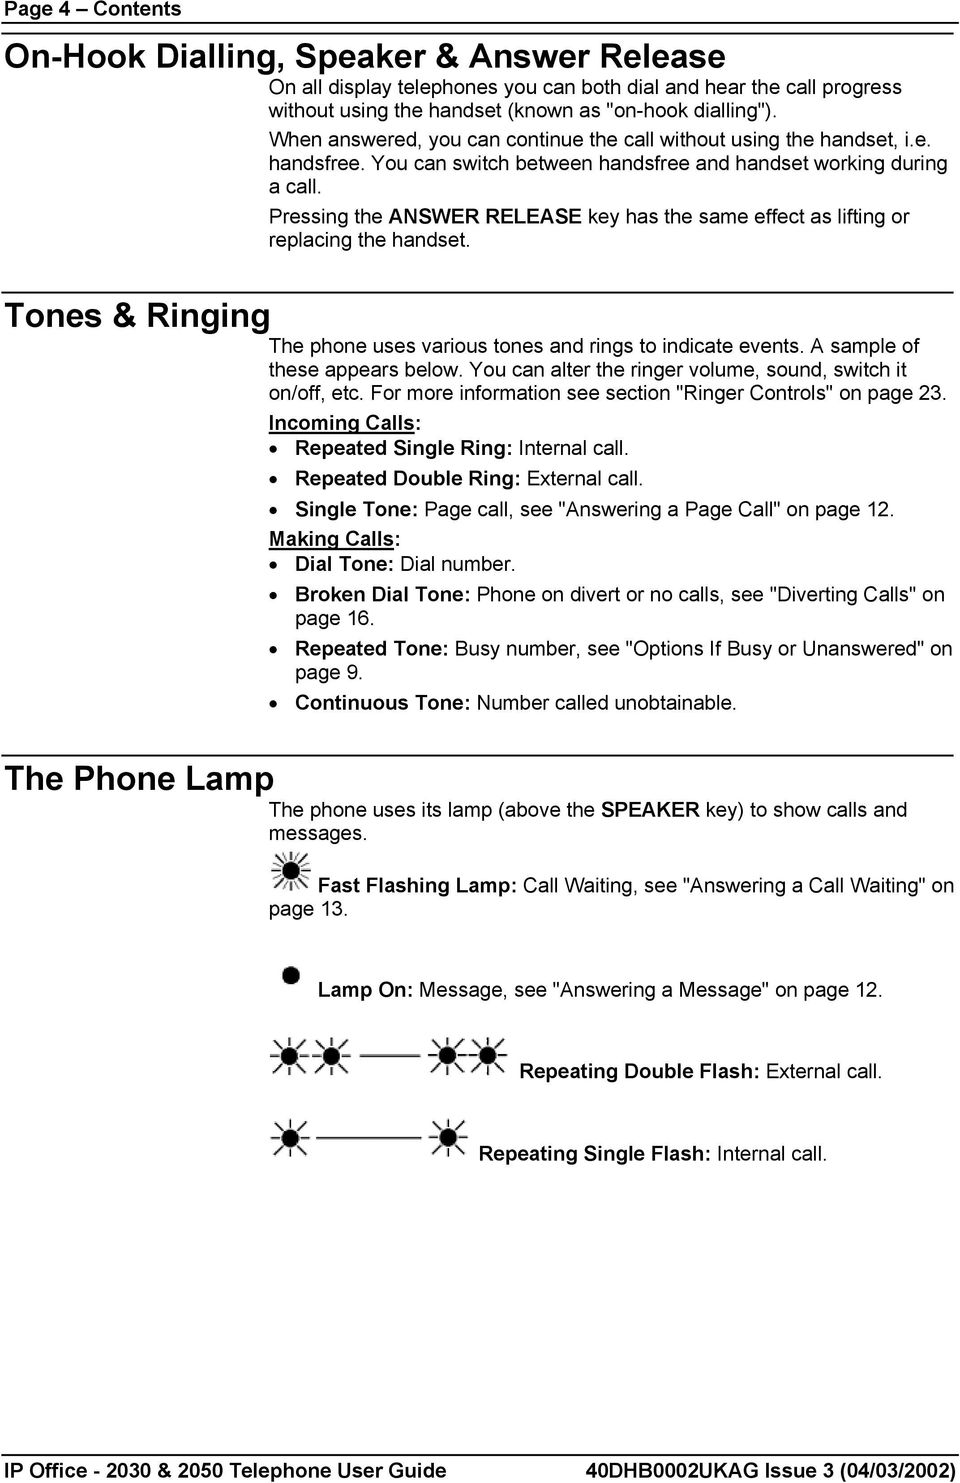 Pressing the ANSWER RELEASE key has the same effect as lifting or replacing the handset. Tones & Ringing The phone uses various tones and rings to indicate events. A sample of these appears below.